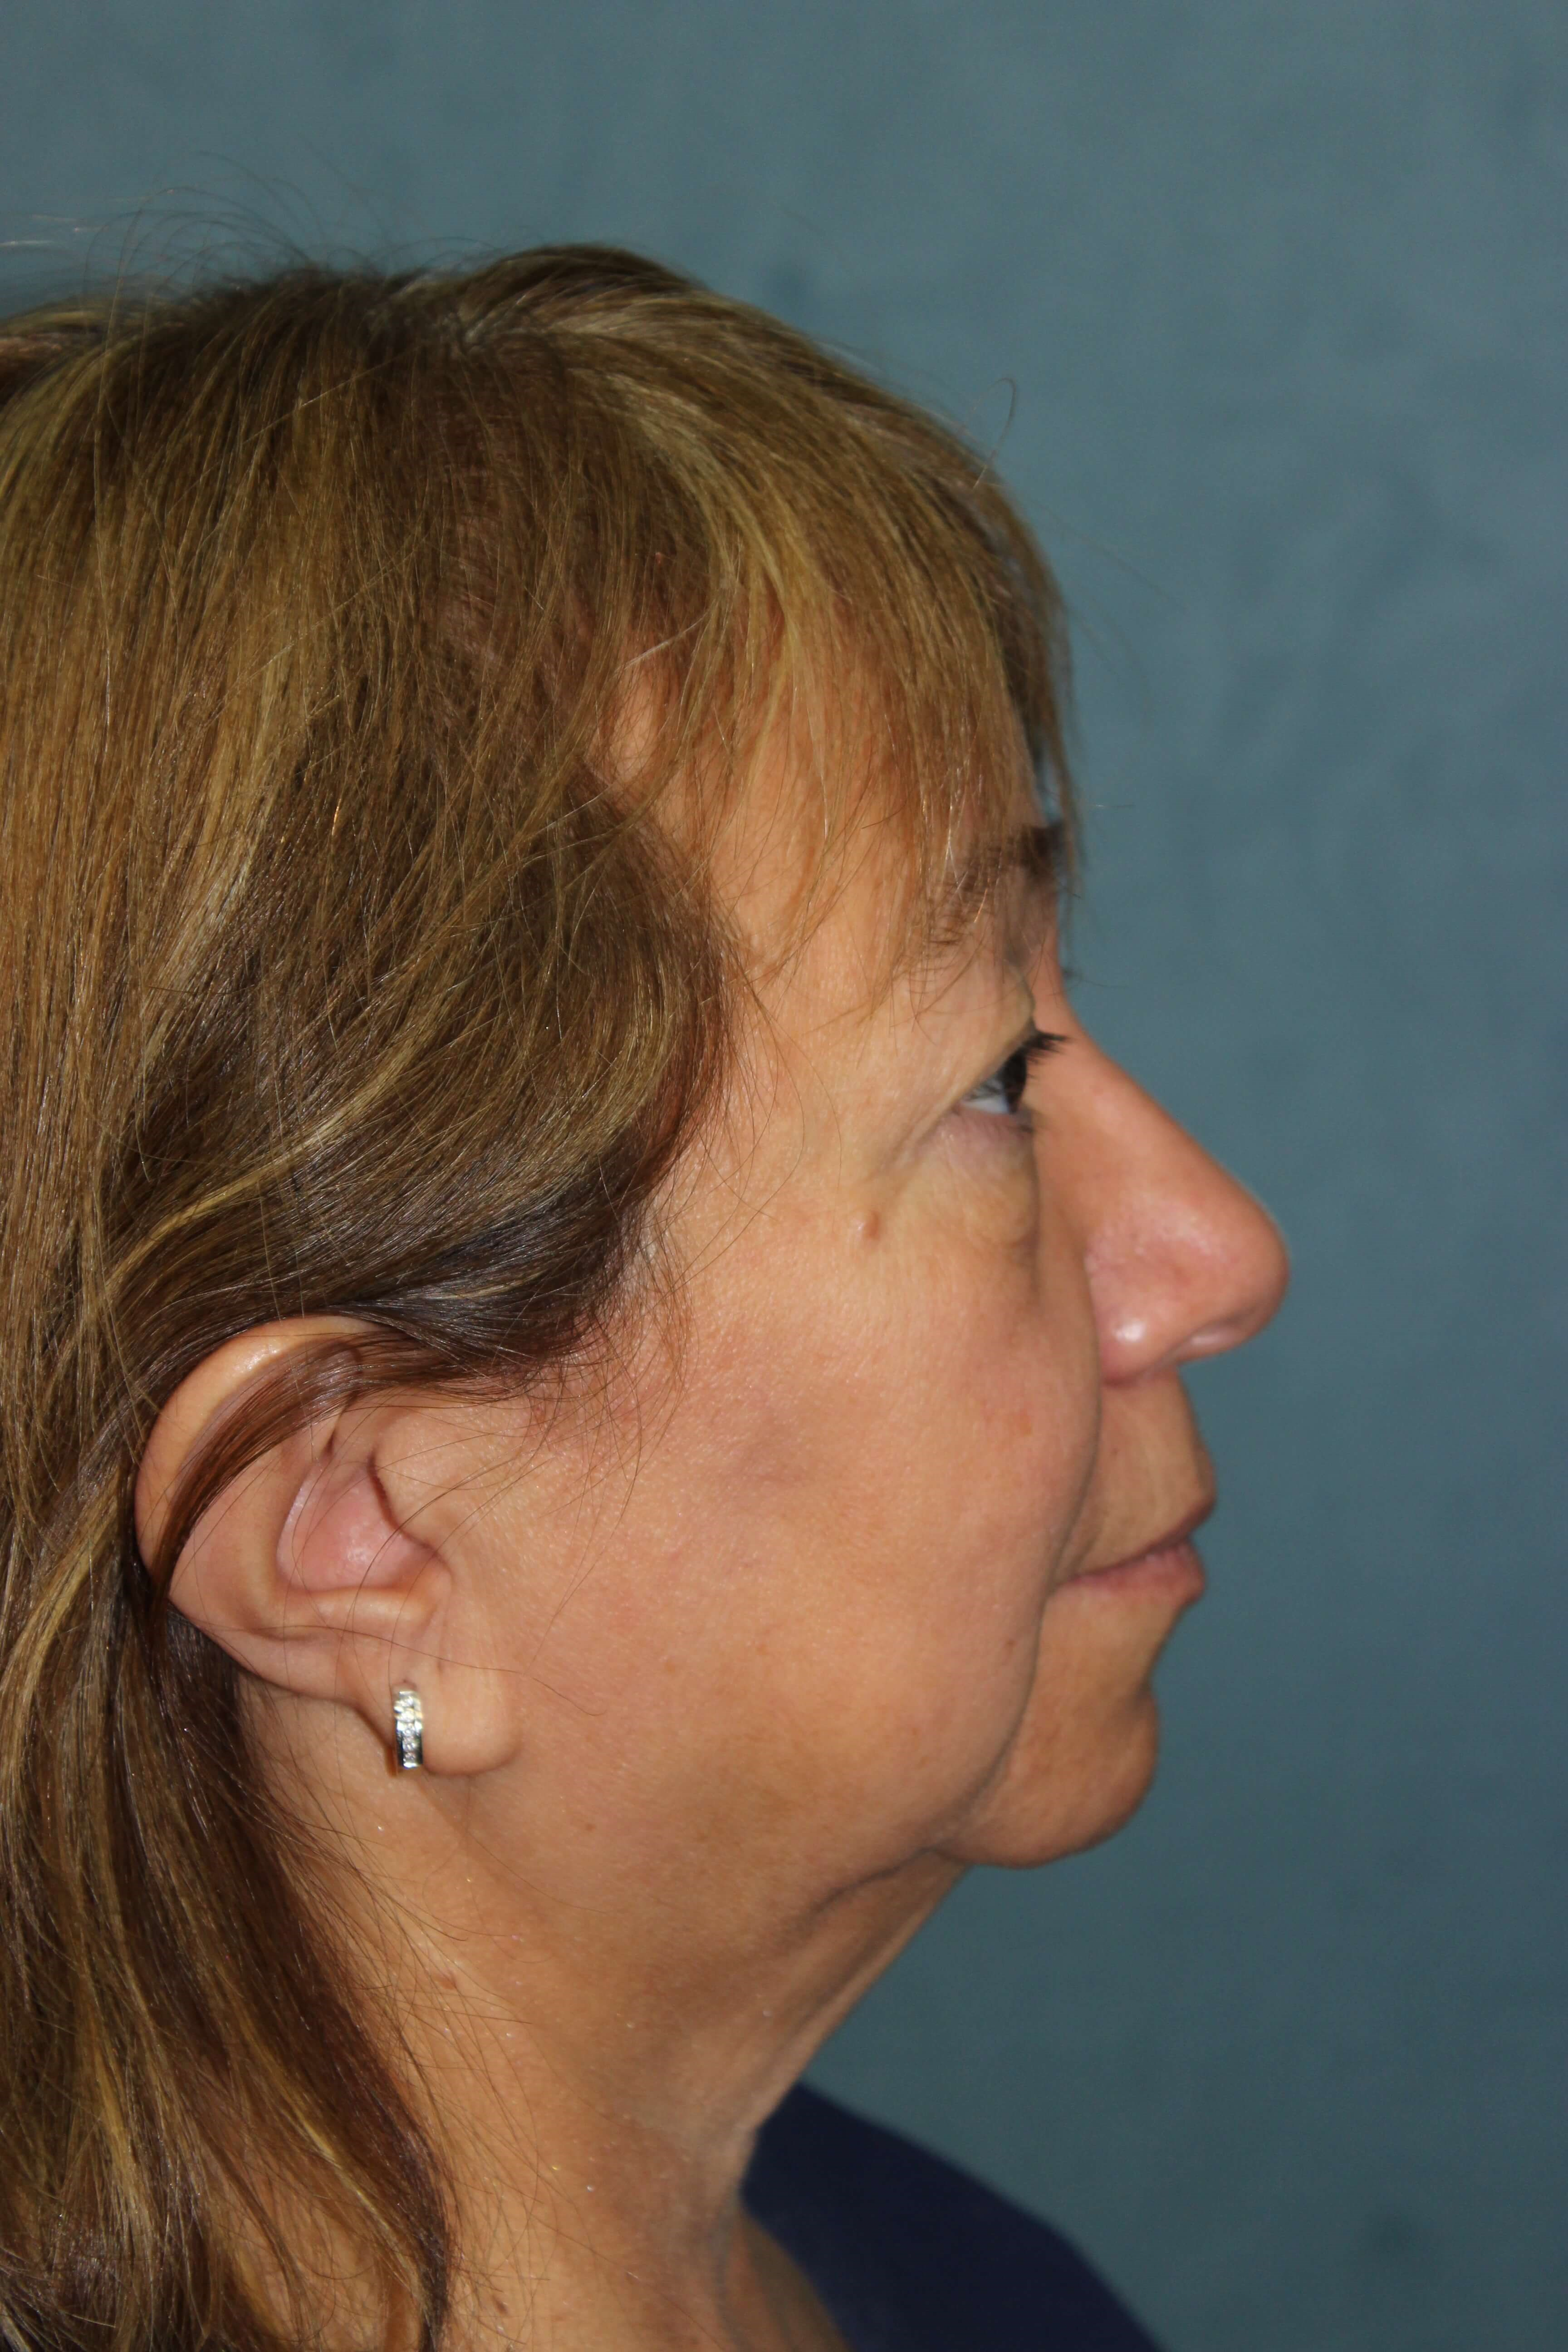 San Diego Eyelid & Facelift Before